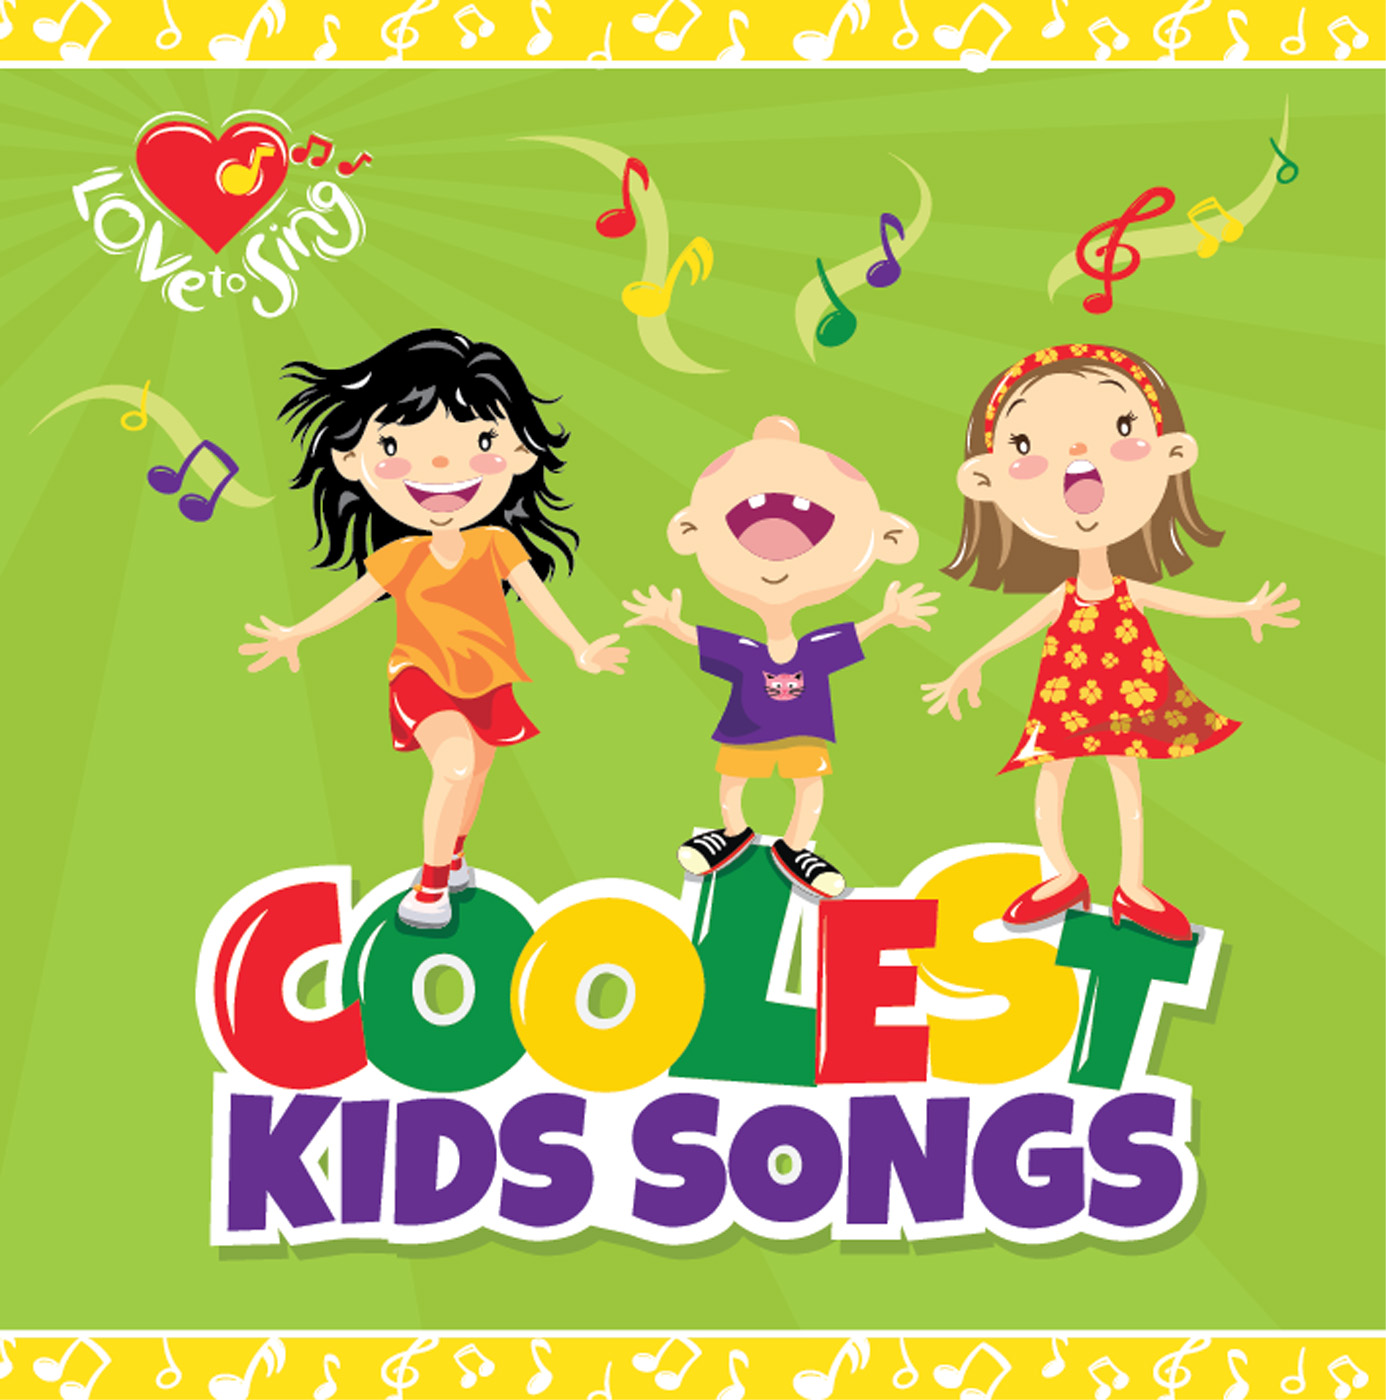 Coolest Kids Songs CD